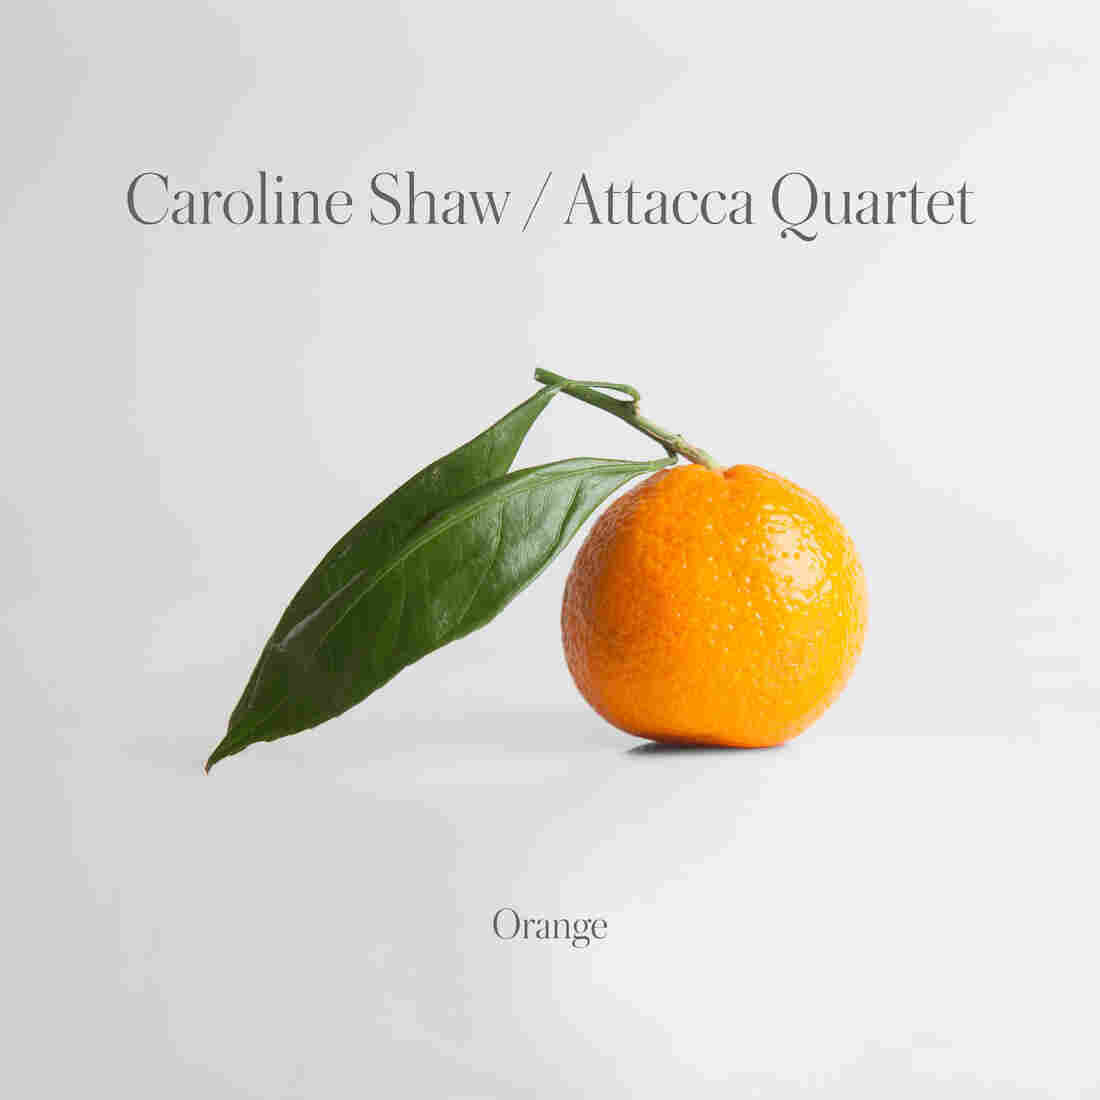 Caroline Shaw / Attacca Quartet, Orange